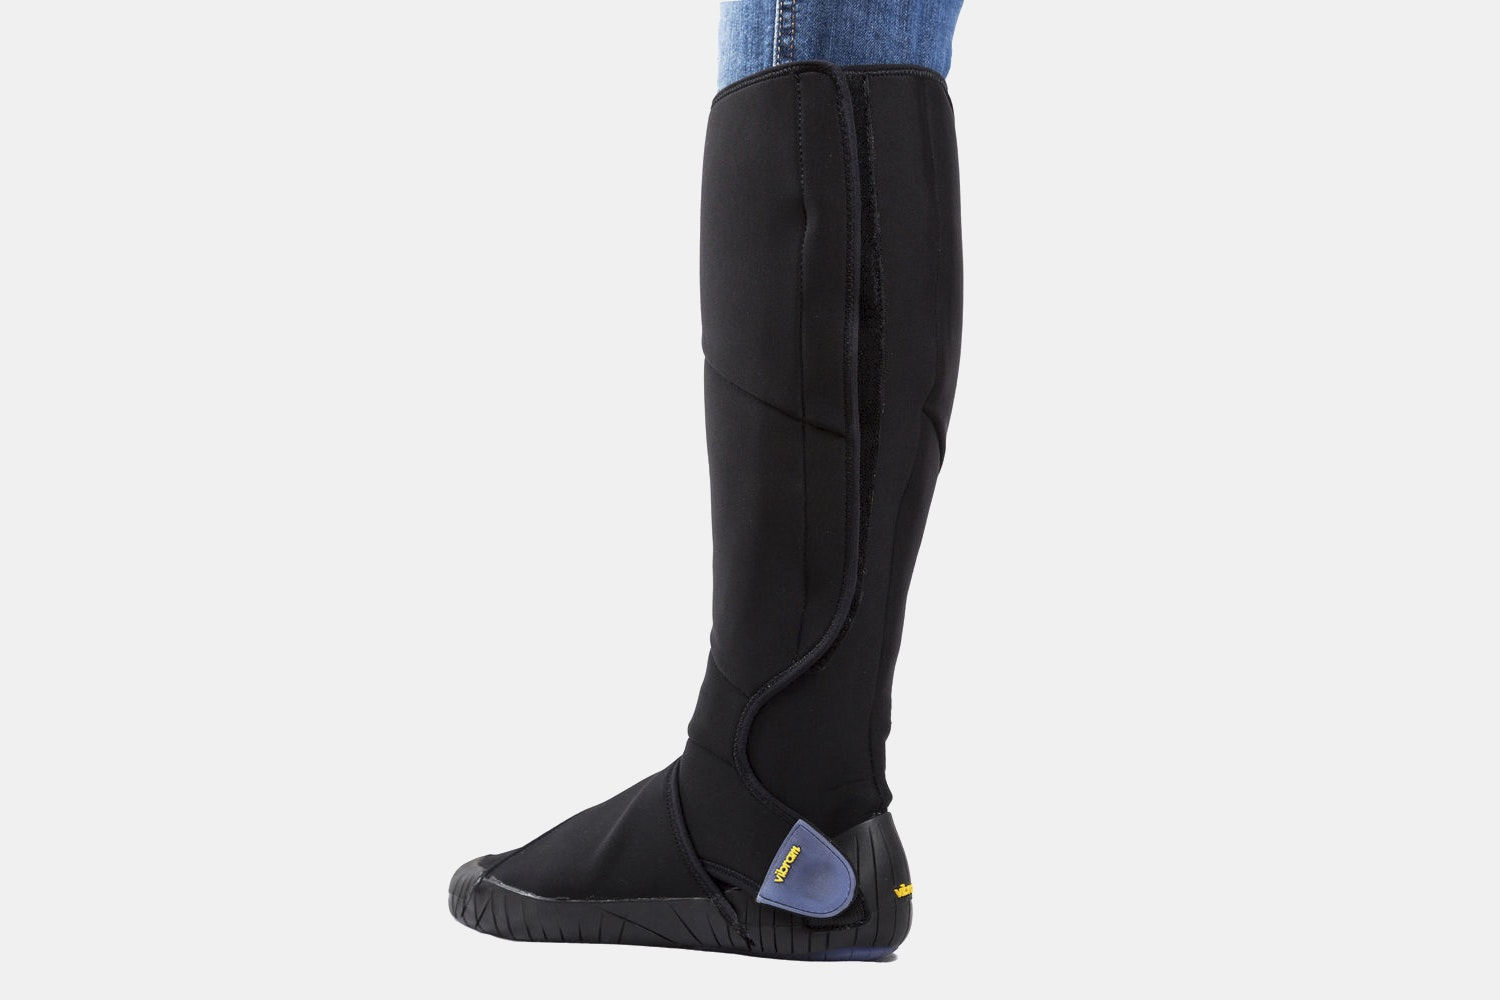 Neoprene High Black/Blue (+ $20)